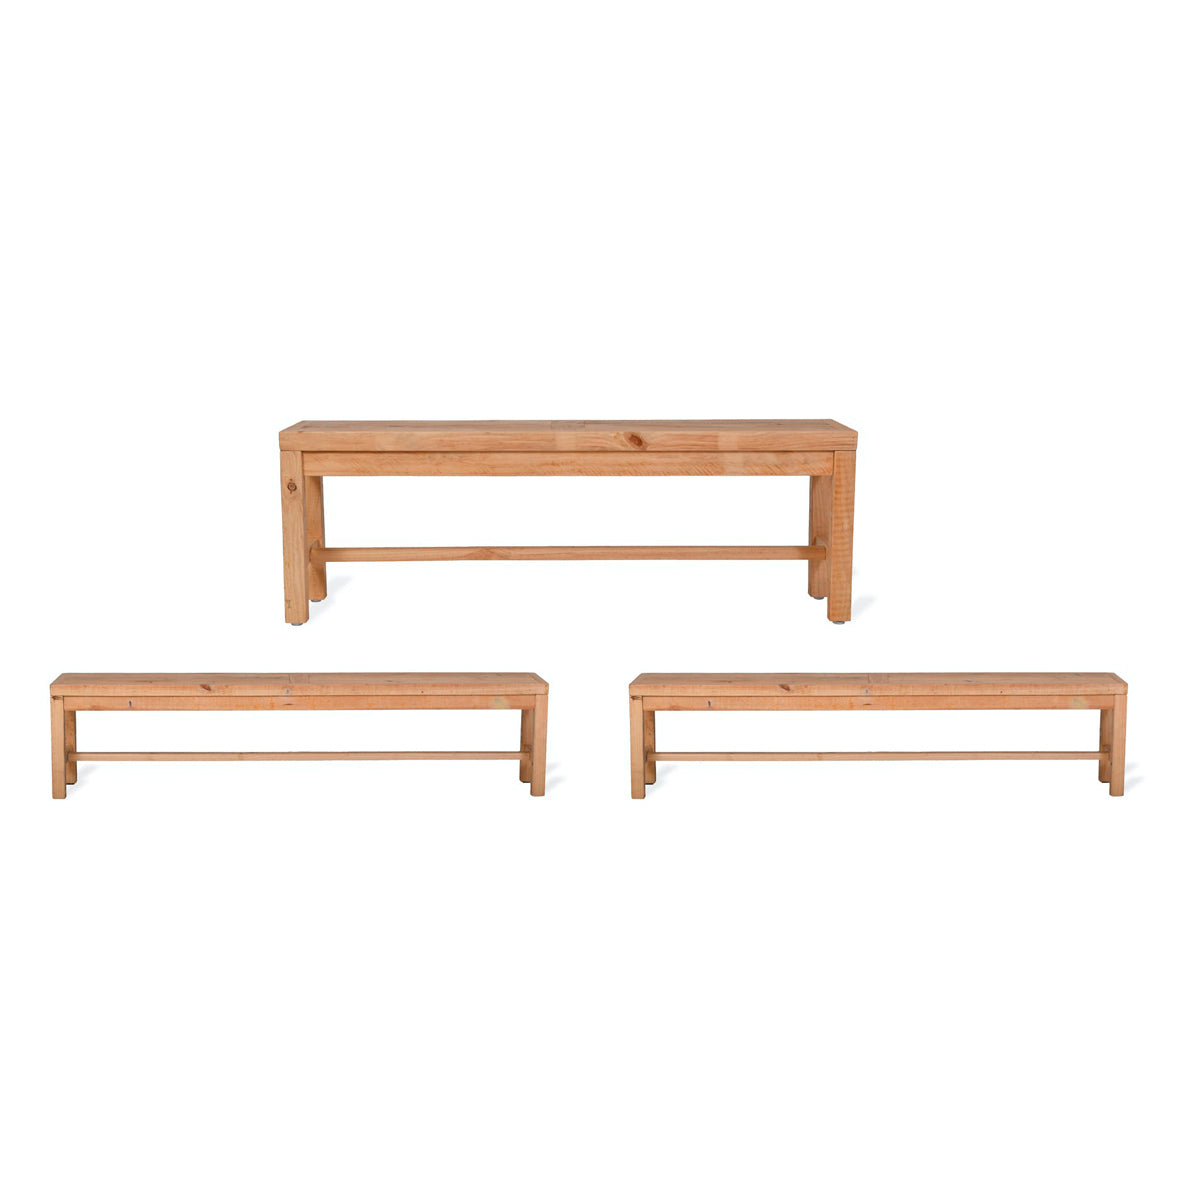 Brookville Table and Bench Set, Large - Pine